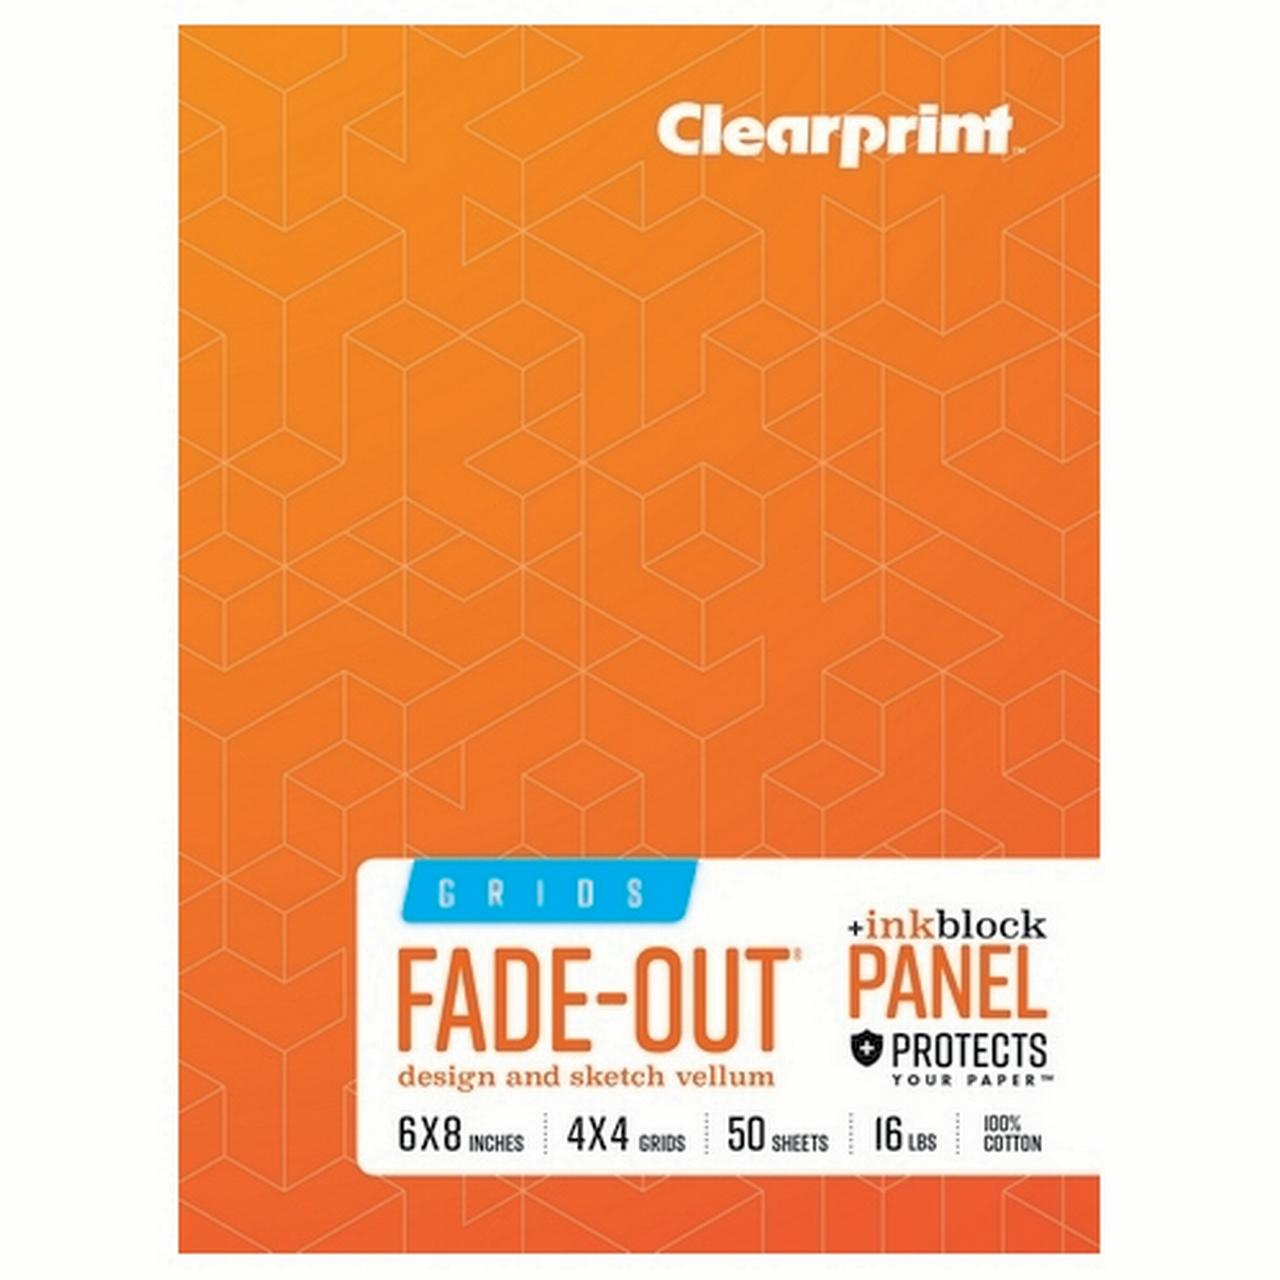 clearprint 1000h 100% cotton design vellum field book with ink block panel and 8x8 fade-out grid, 6 x 8 inches, 50 sheets per book, 1 each (cvb68g2)